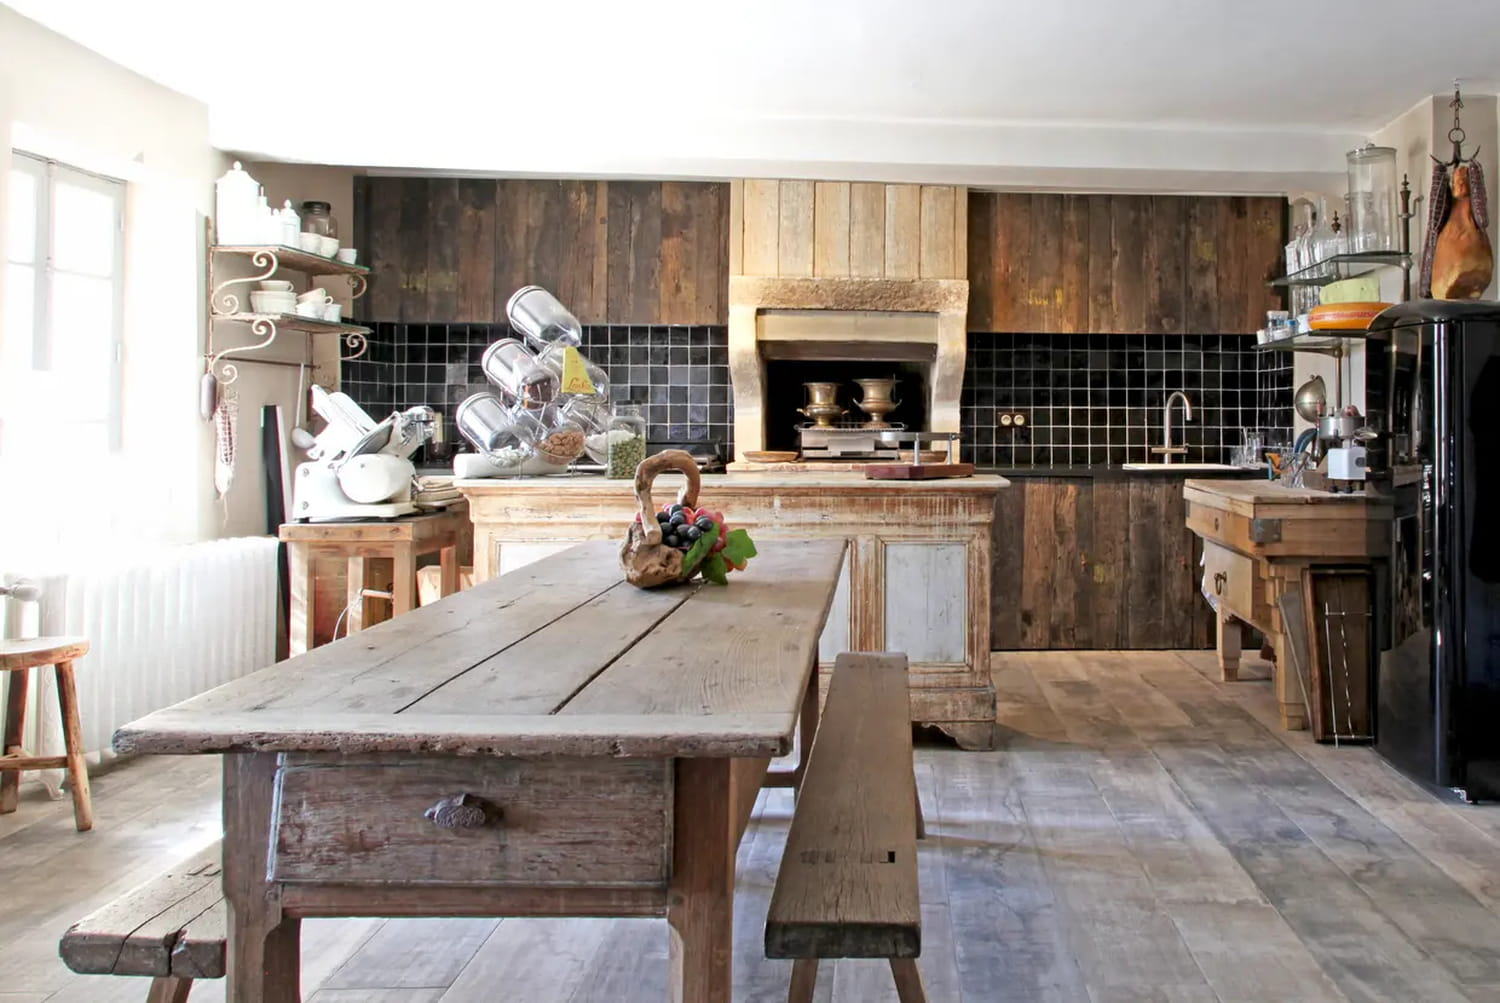 Cuisine campagne chic: comment adopter ou revisiter le style rustique?